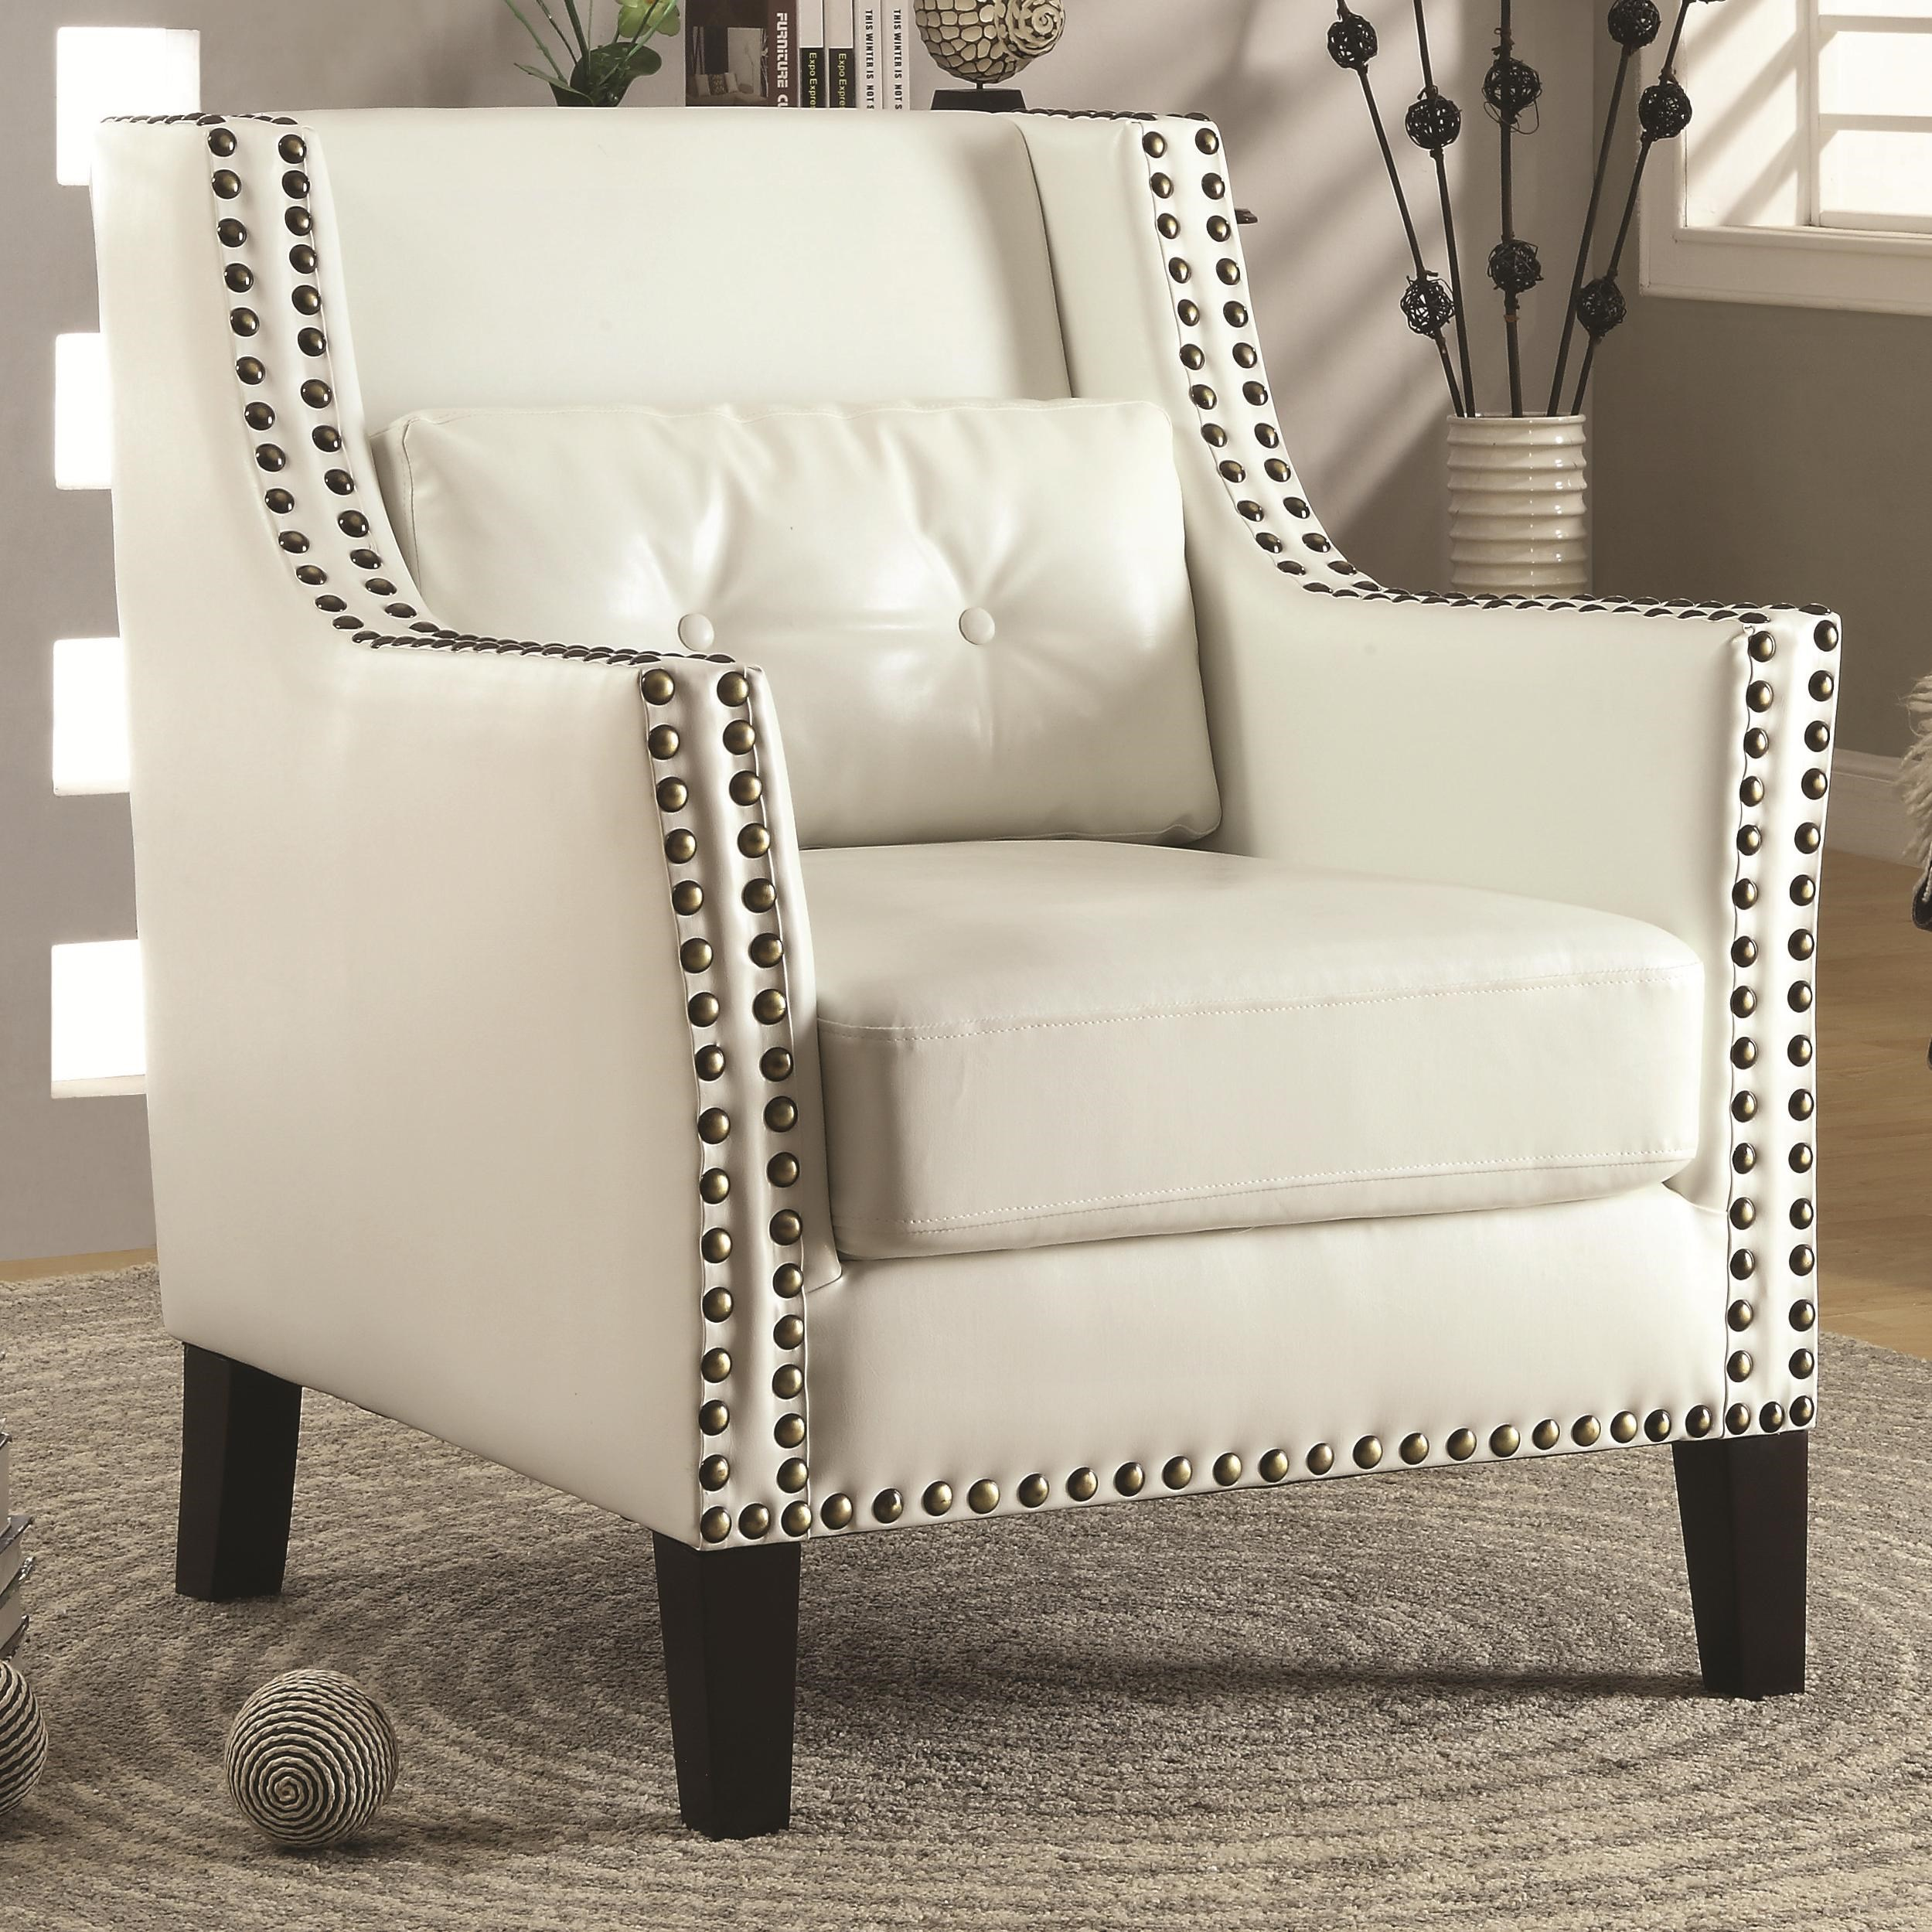 Superb ... Accent Seating Transitional Wing Chair. Shown With White Faux Leather